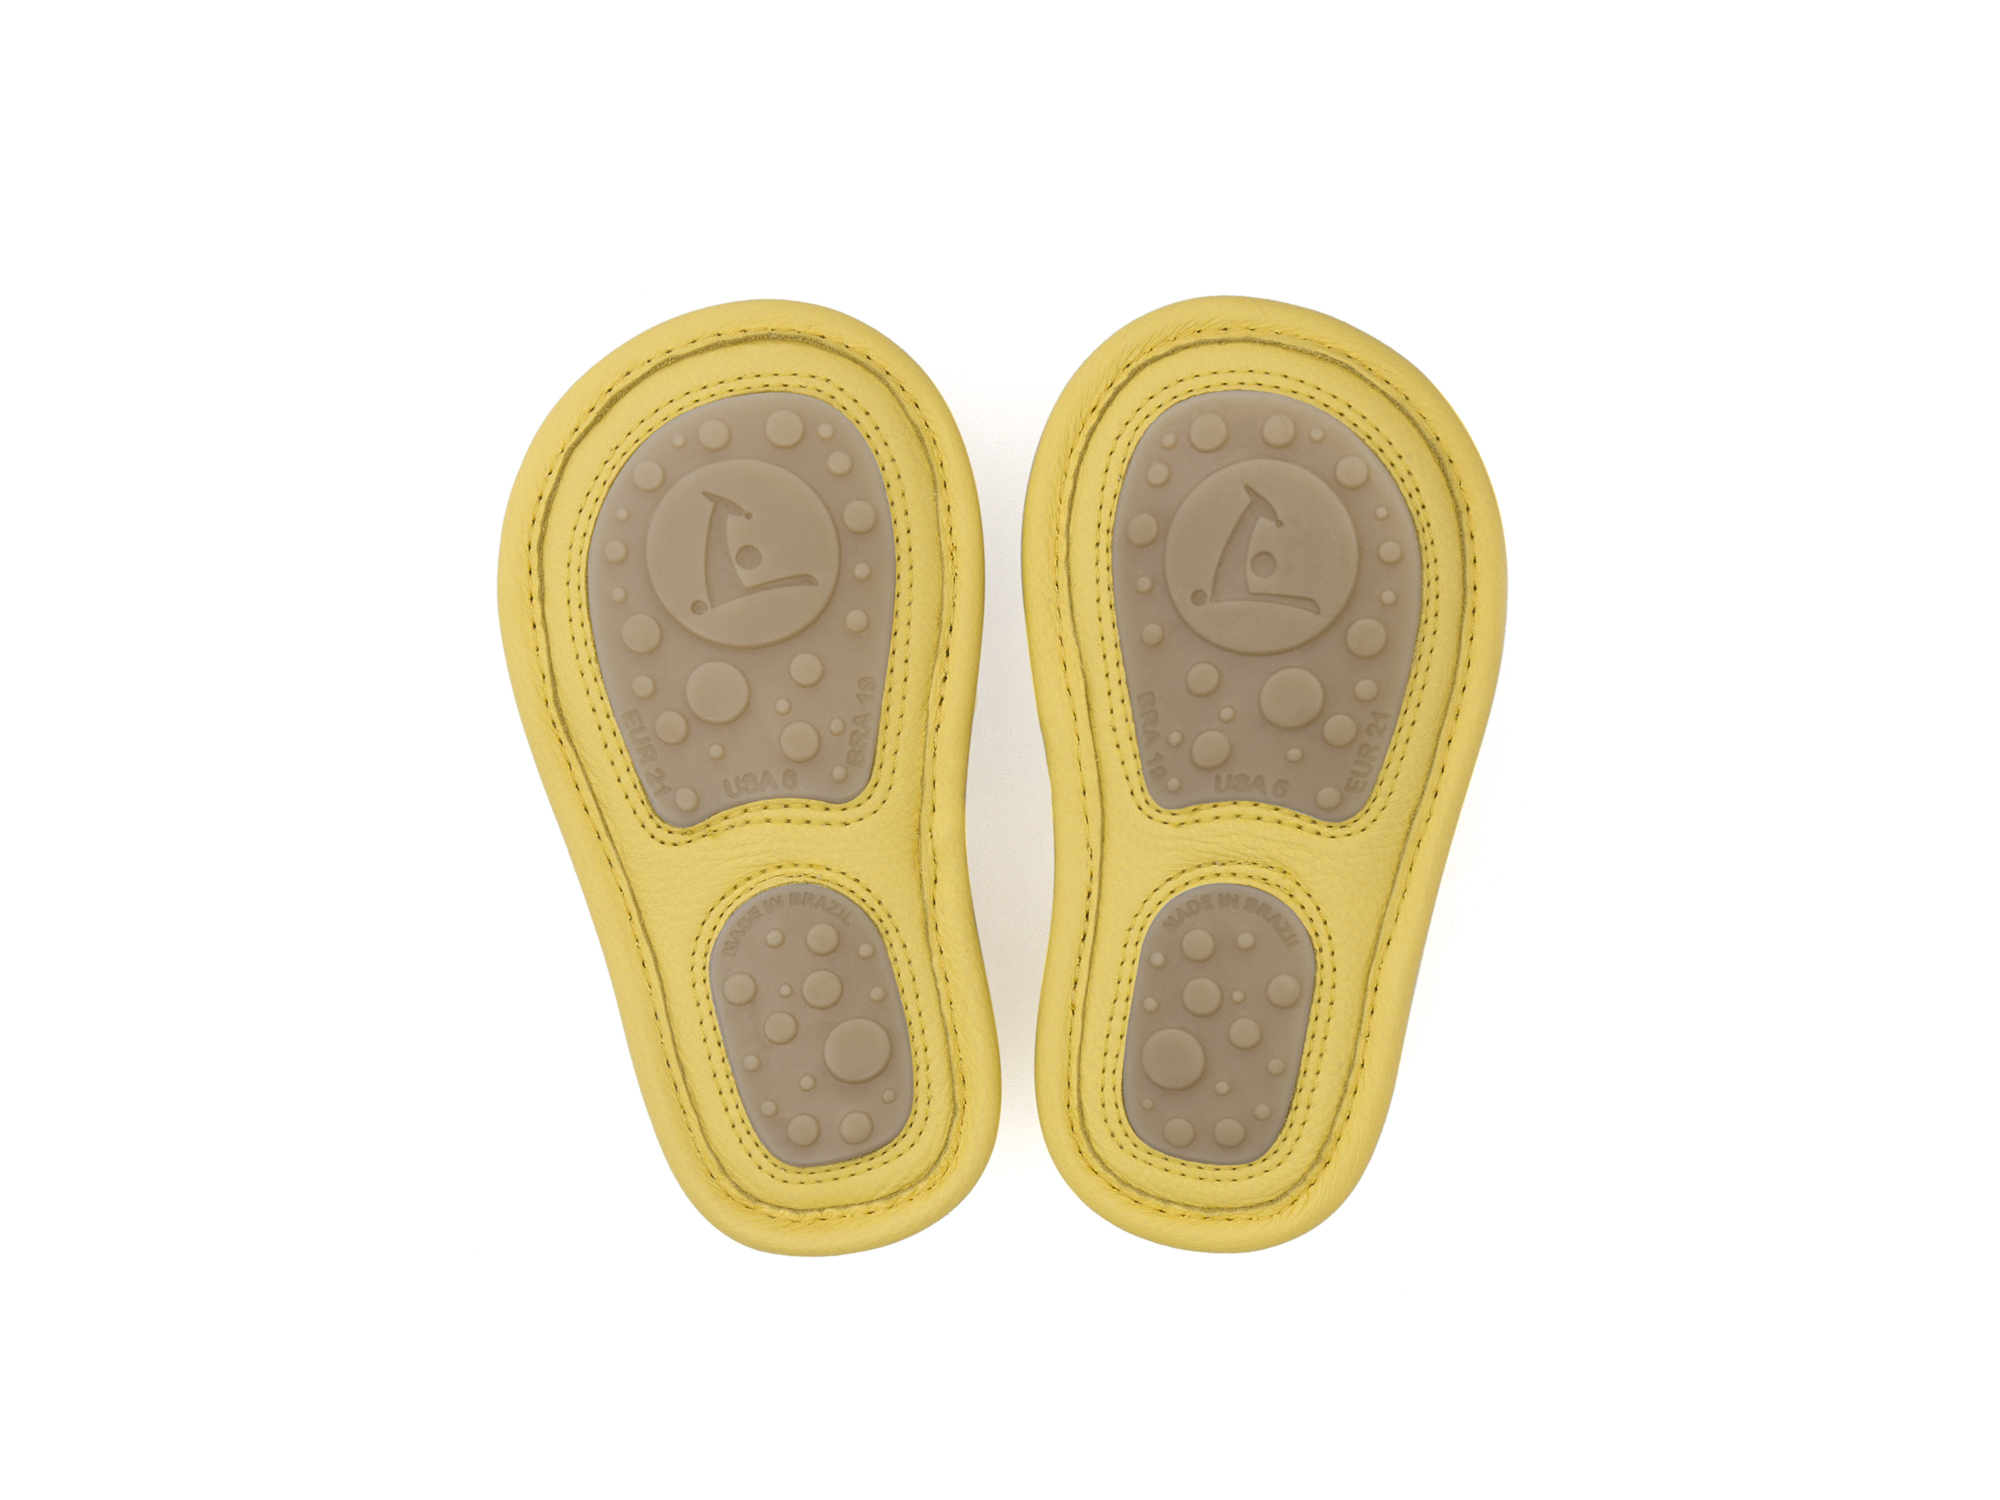 Sandal Windy Sun/ Sun Baby for ages 0 to 2 years - 3